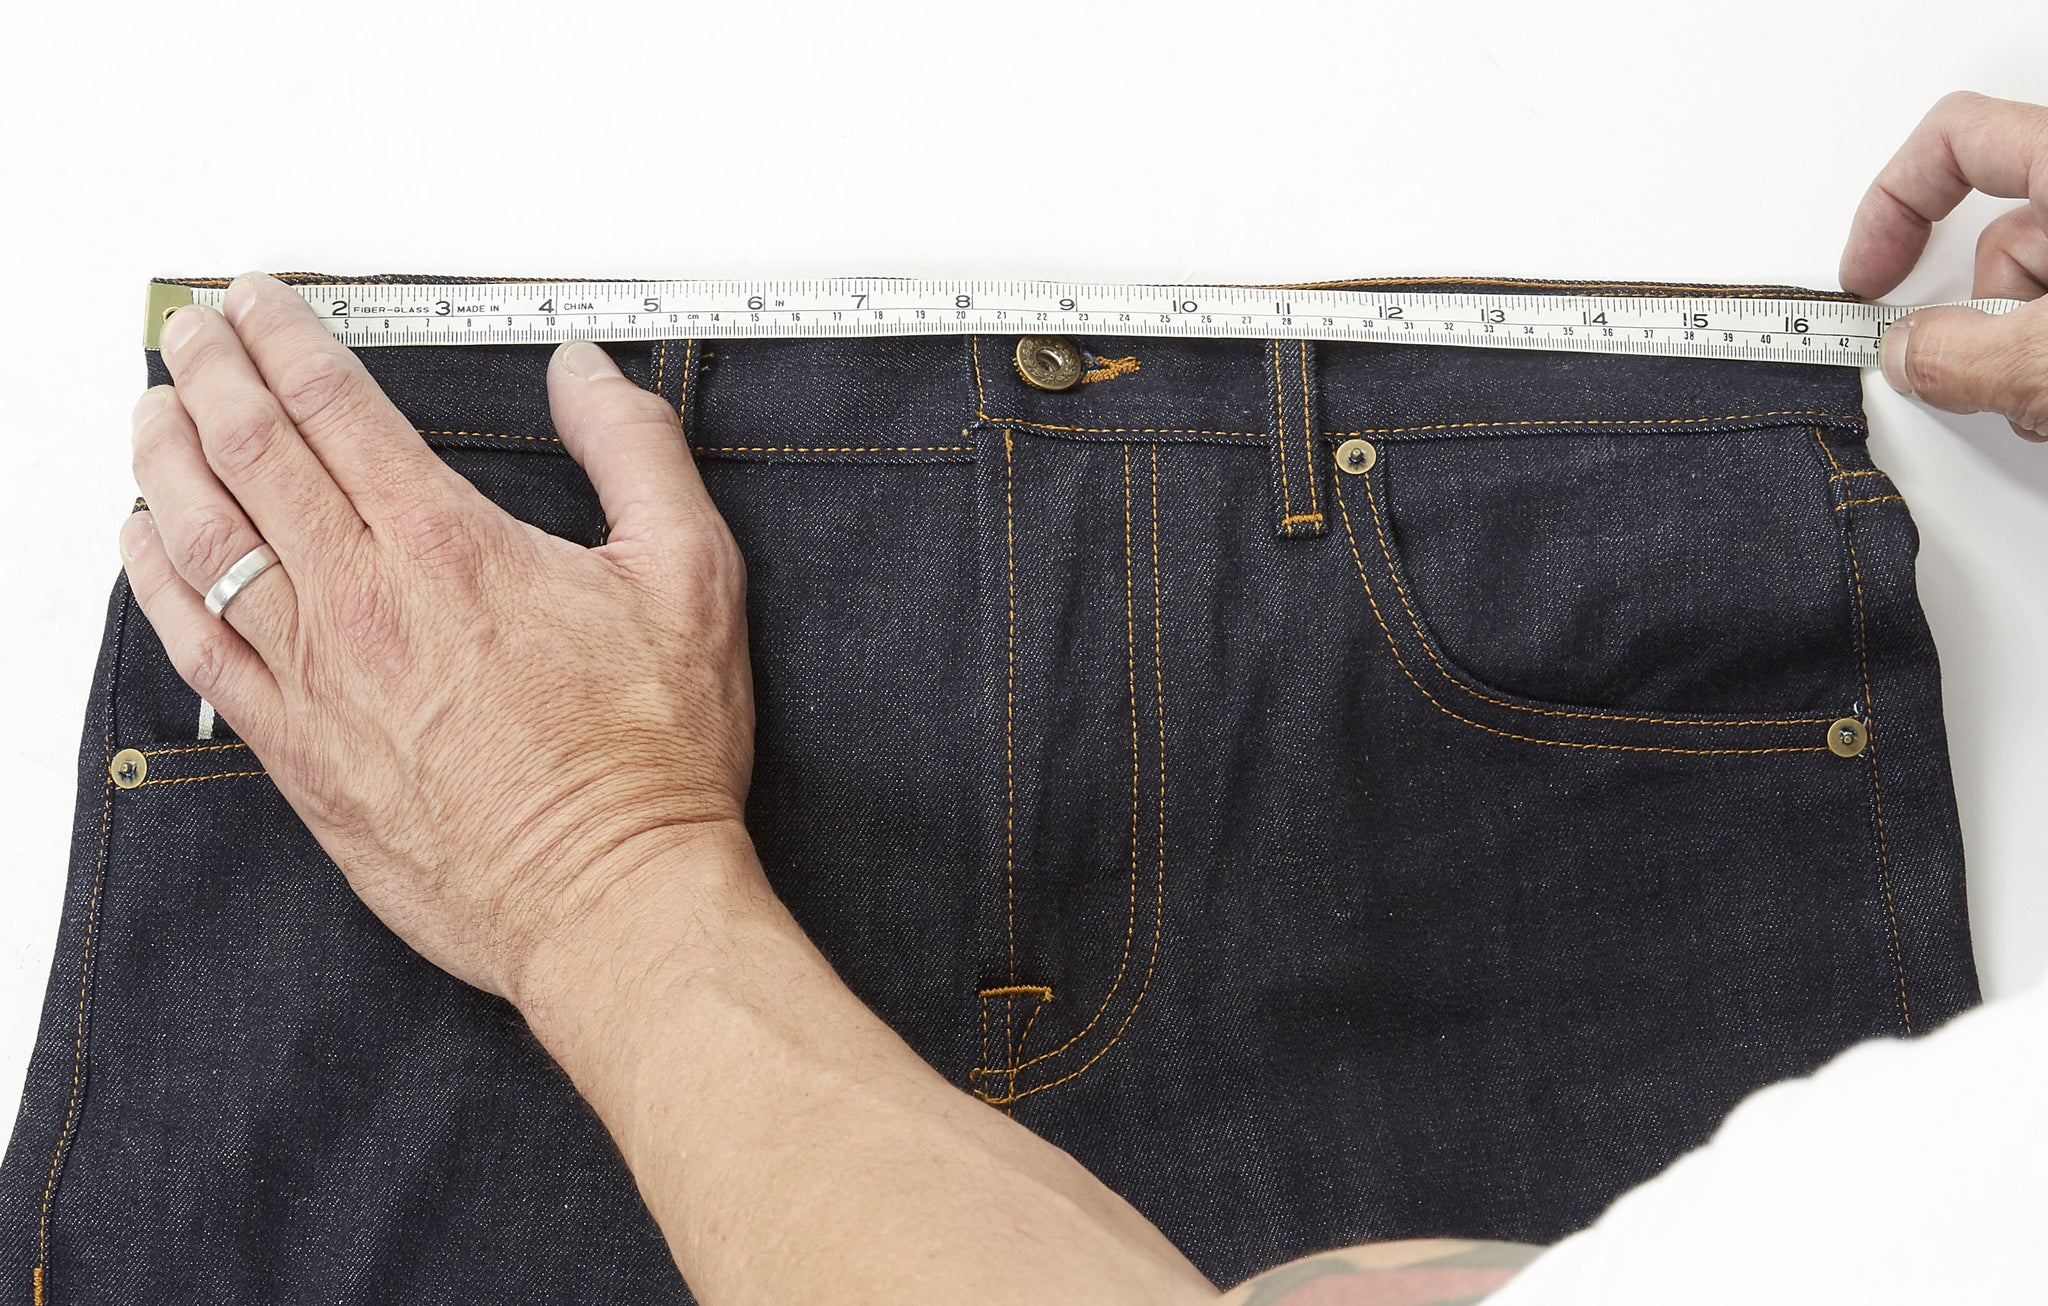 Measuring your selvedge denim jeans